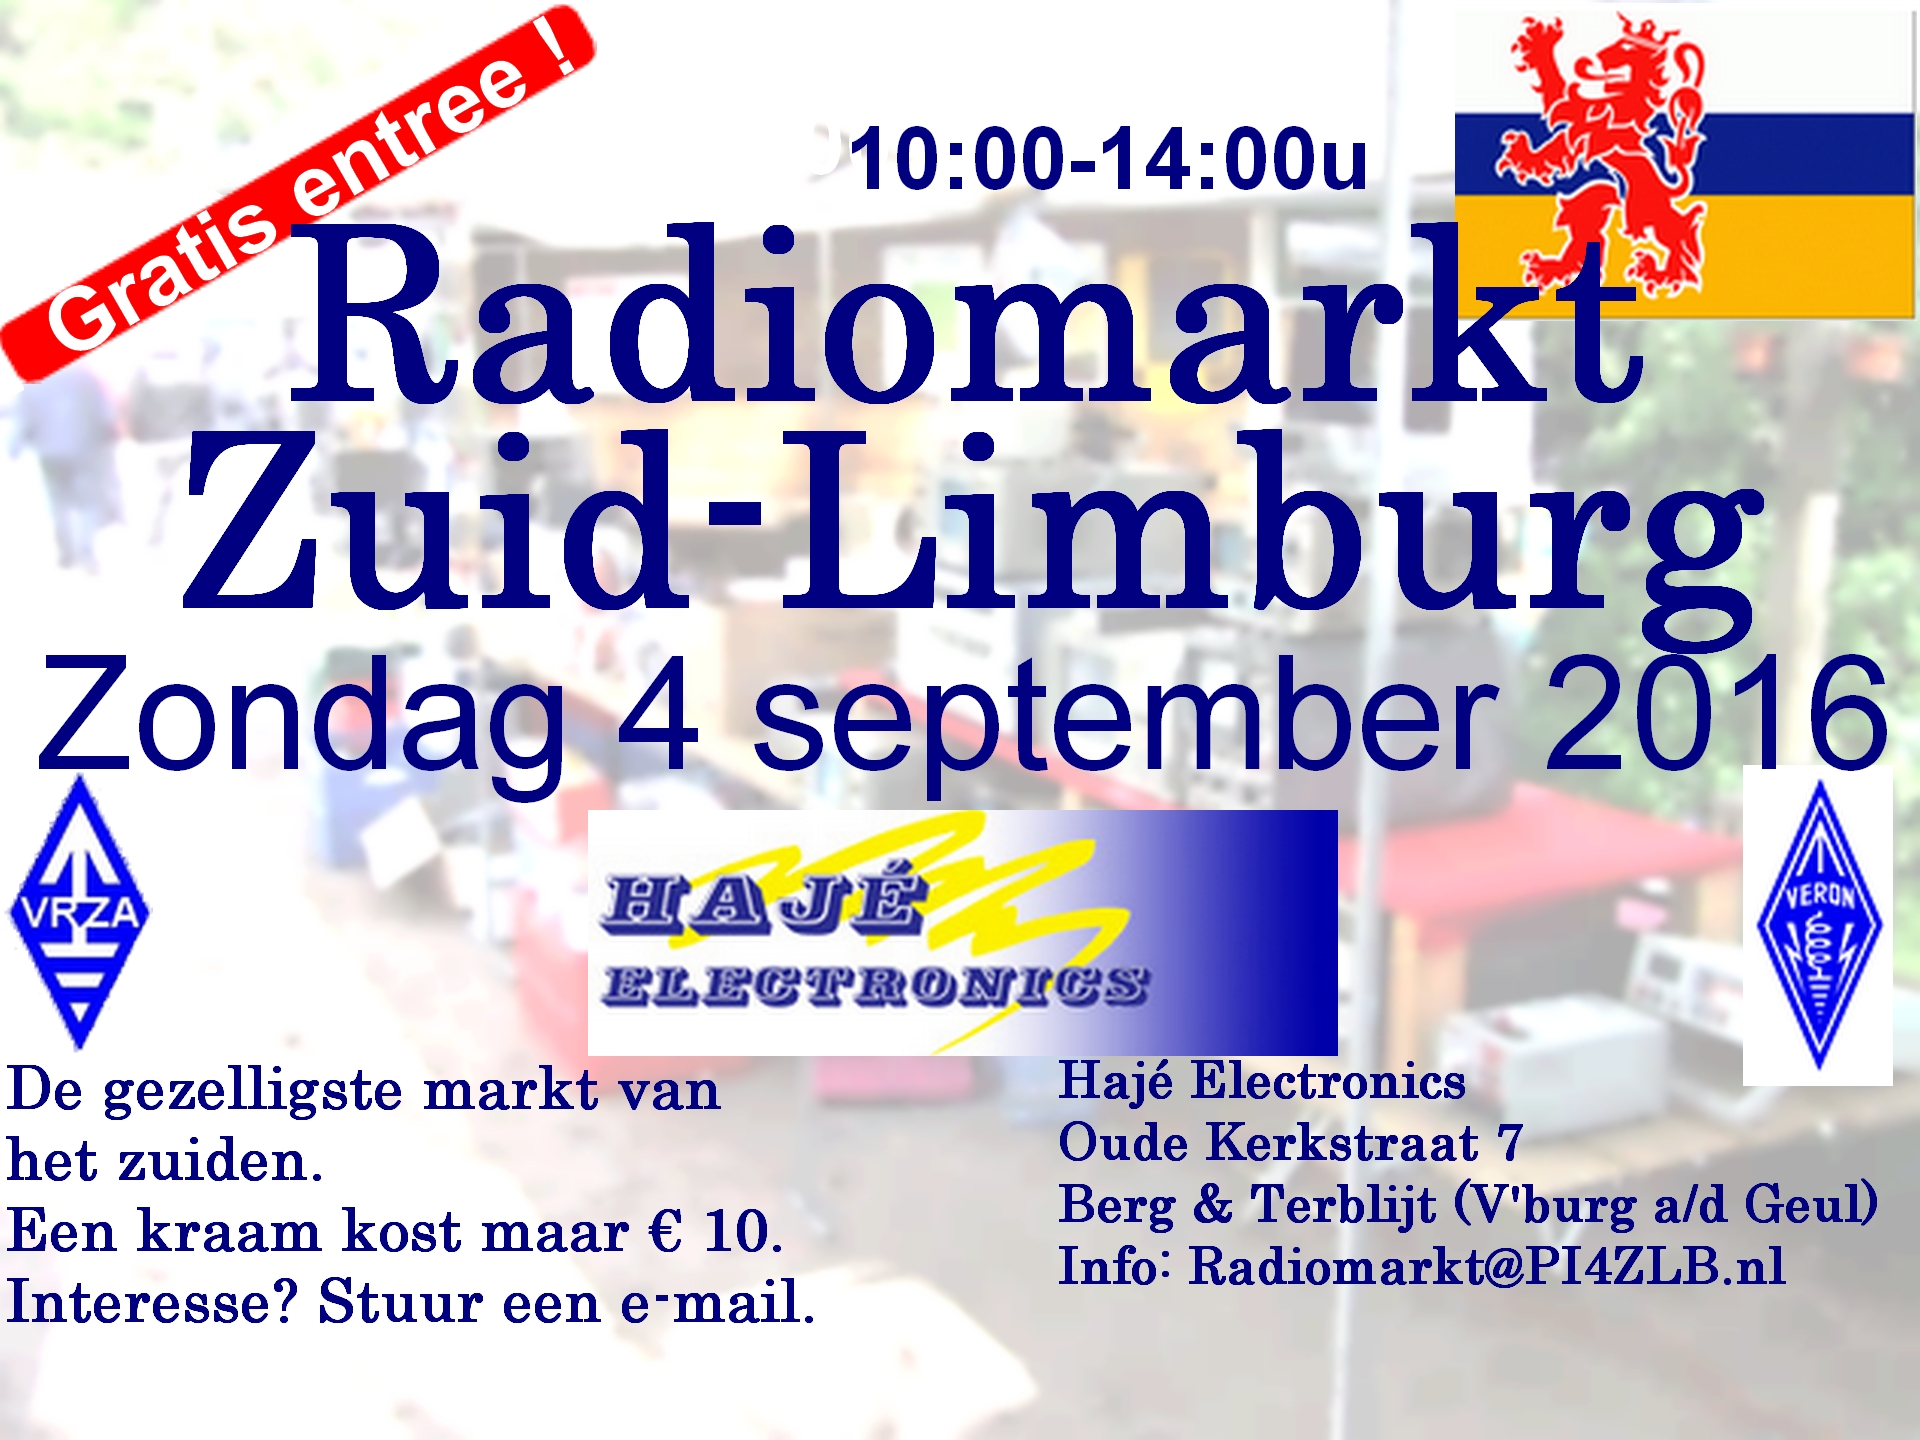 Radiomarkt Zuid-Limburg op 4 september 2016